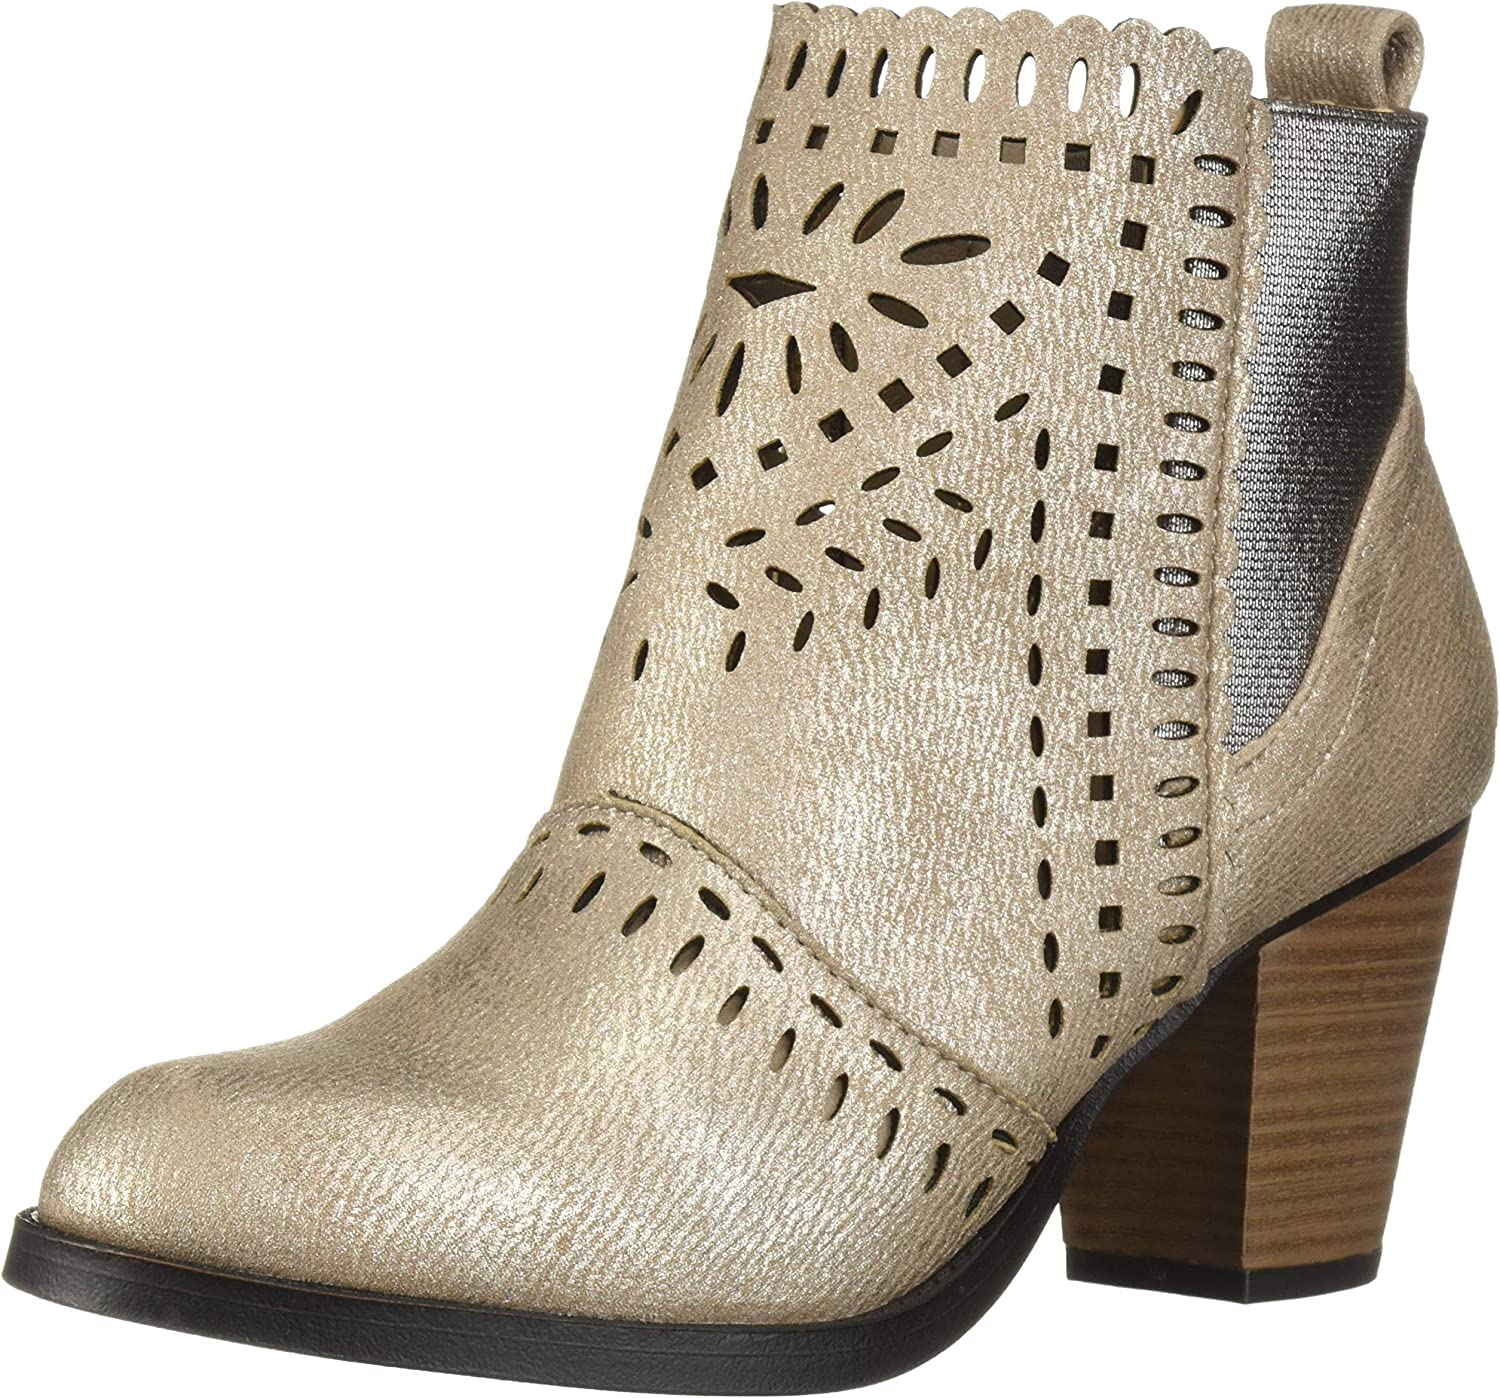 Rampage Womens Women's Echer Perforated Block Heel Ankle Bootie Ankle Boot